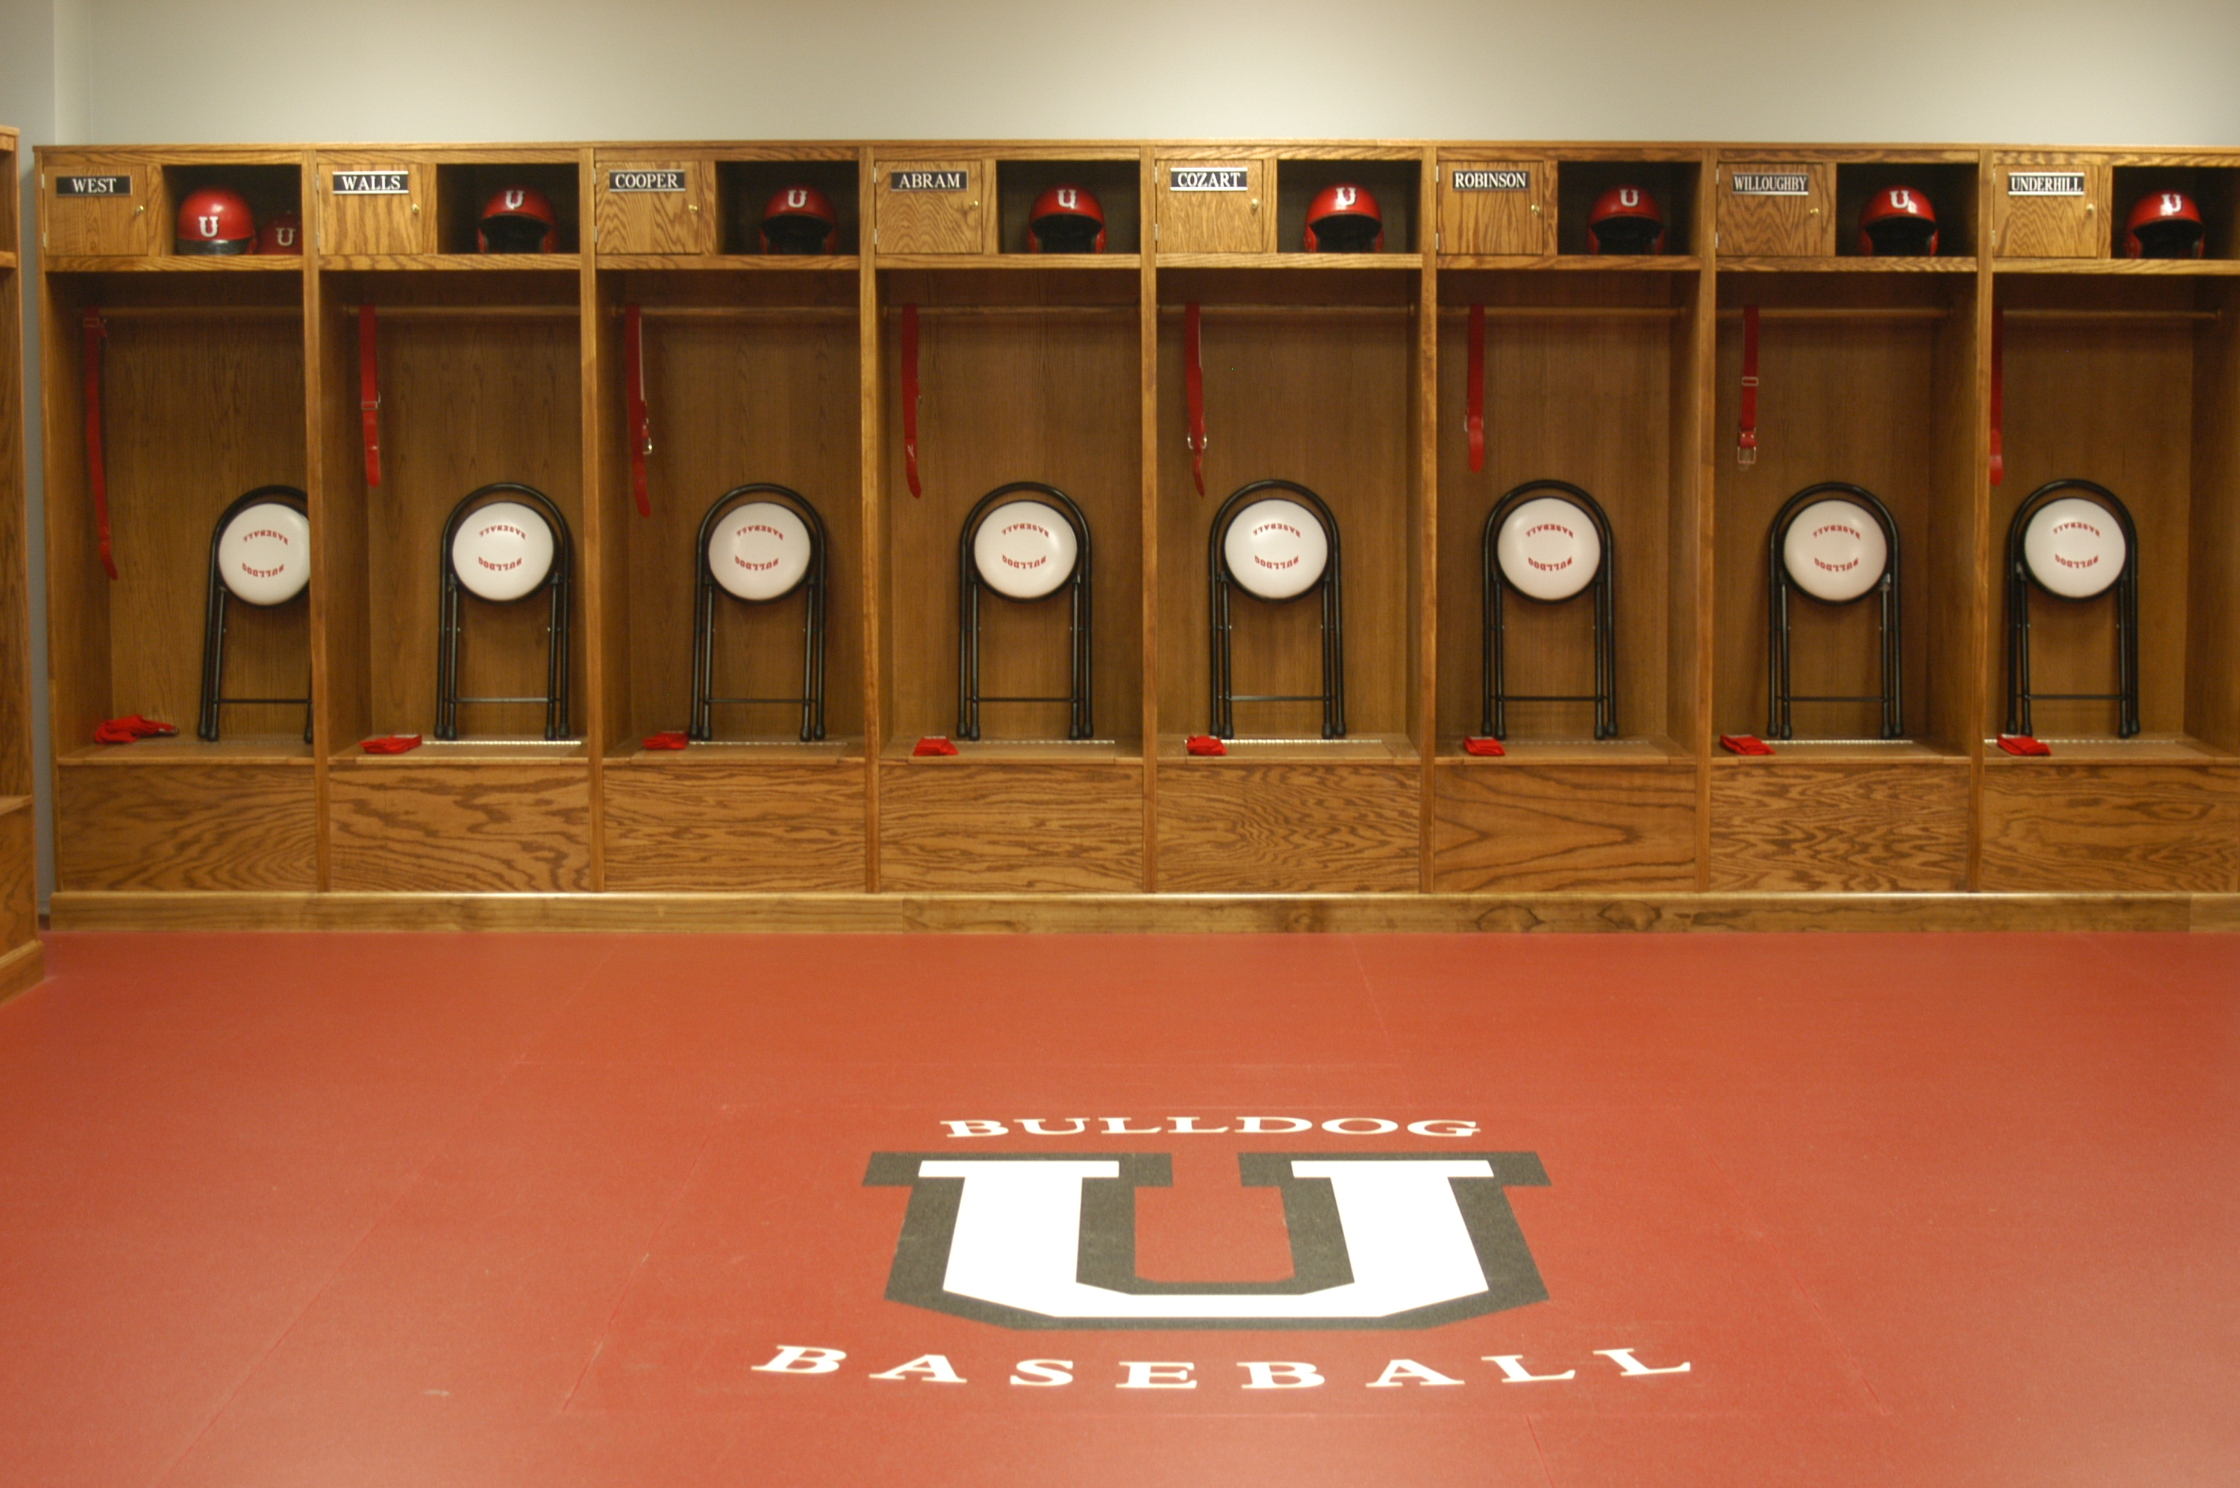 school facilitylocker room rummel facility orig baseball cpc archbishop high hitting golfvsjes locker